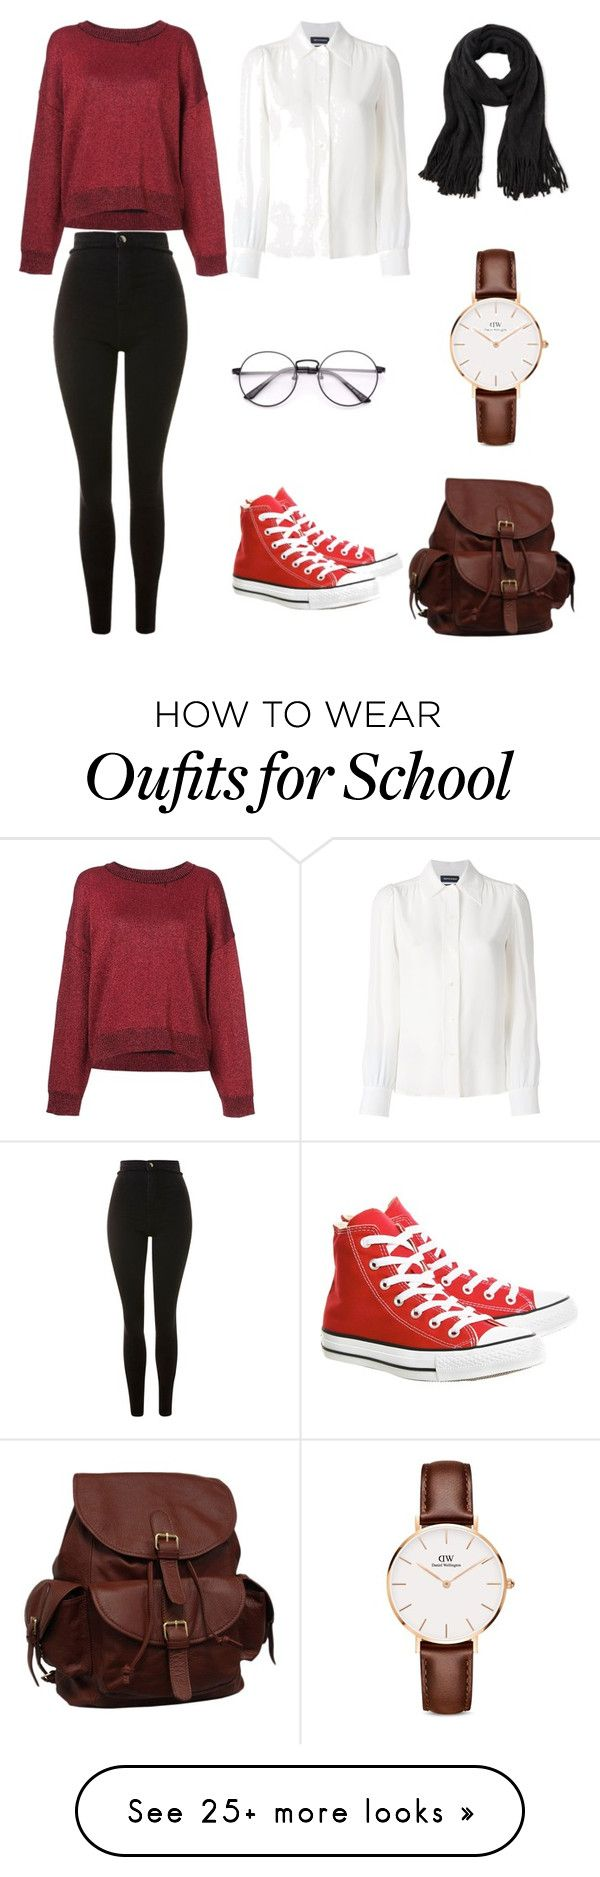 """back to school"" by heidy-robles on Polyvore featuring RtA, Vanessa Seward, Topshop, Converse, Steve Madden, Daniel Wellington and AmeriLeather"